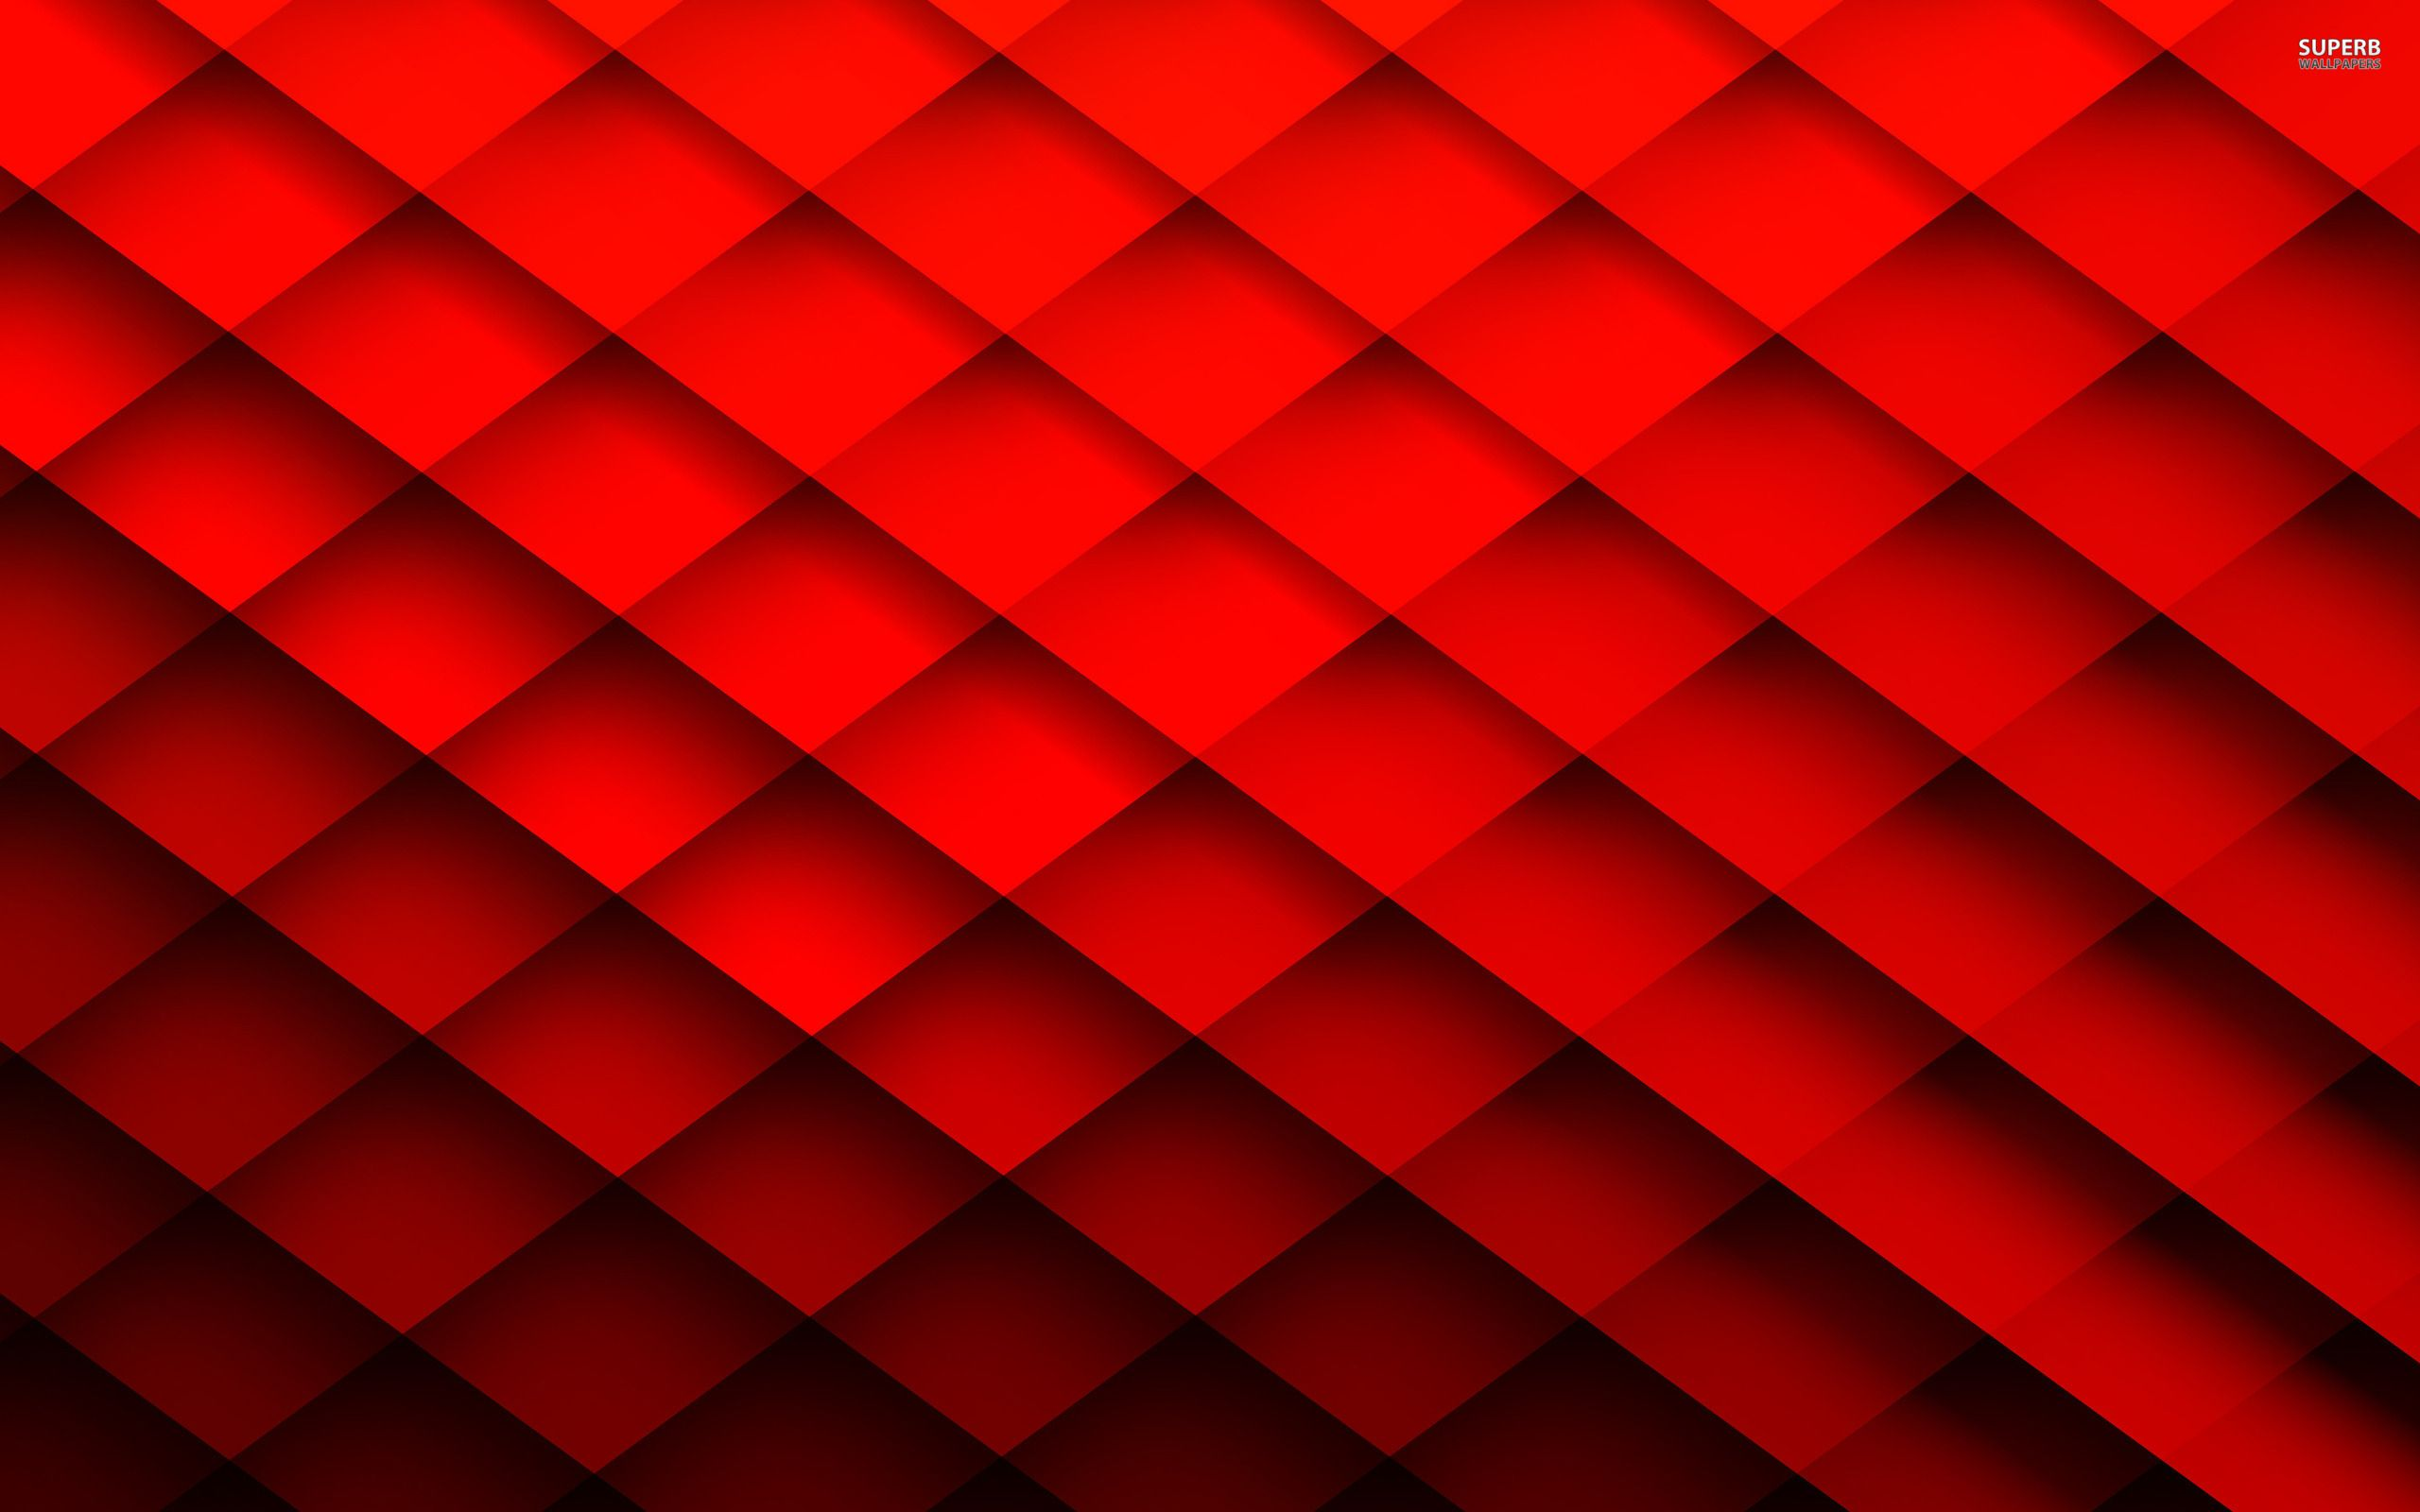 Red Wallpaper 2560x1600 44507 Red Wallpaper Red Abstract Wallpaper Red Abstract